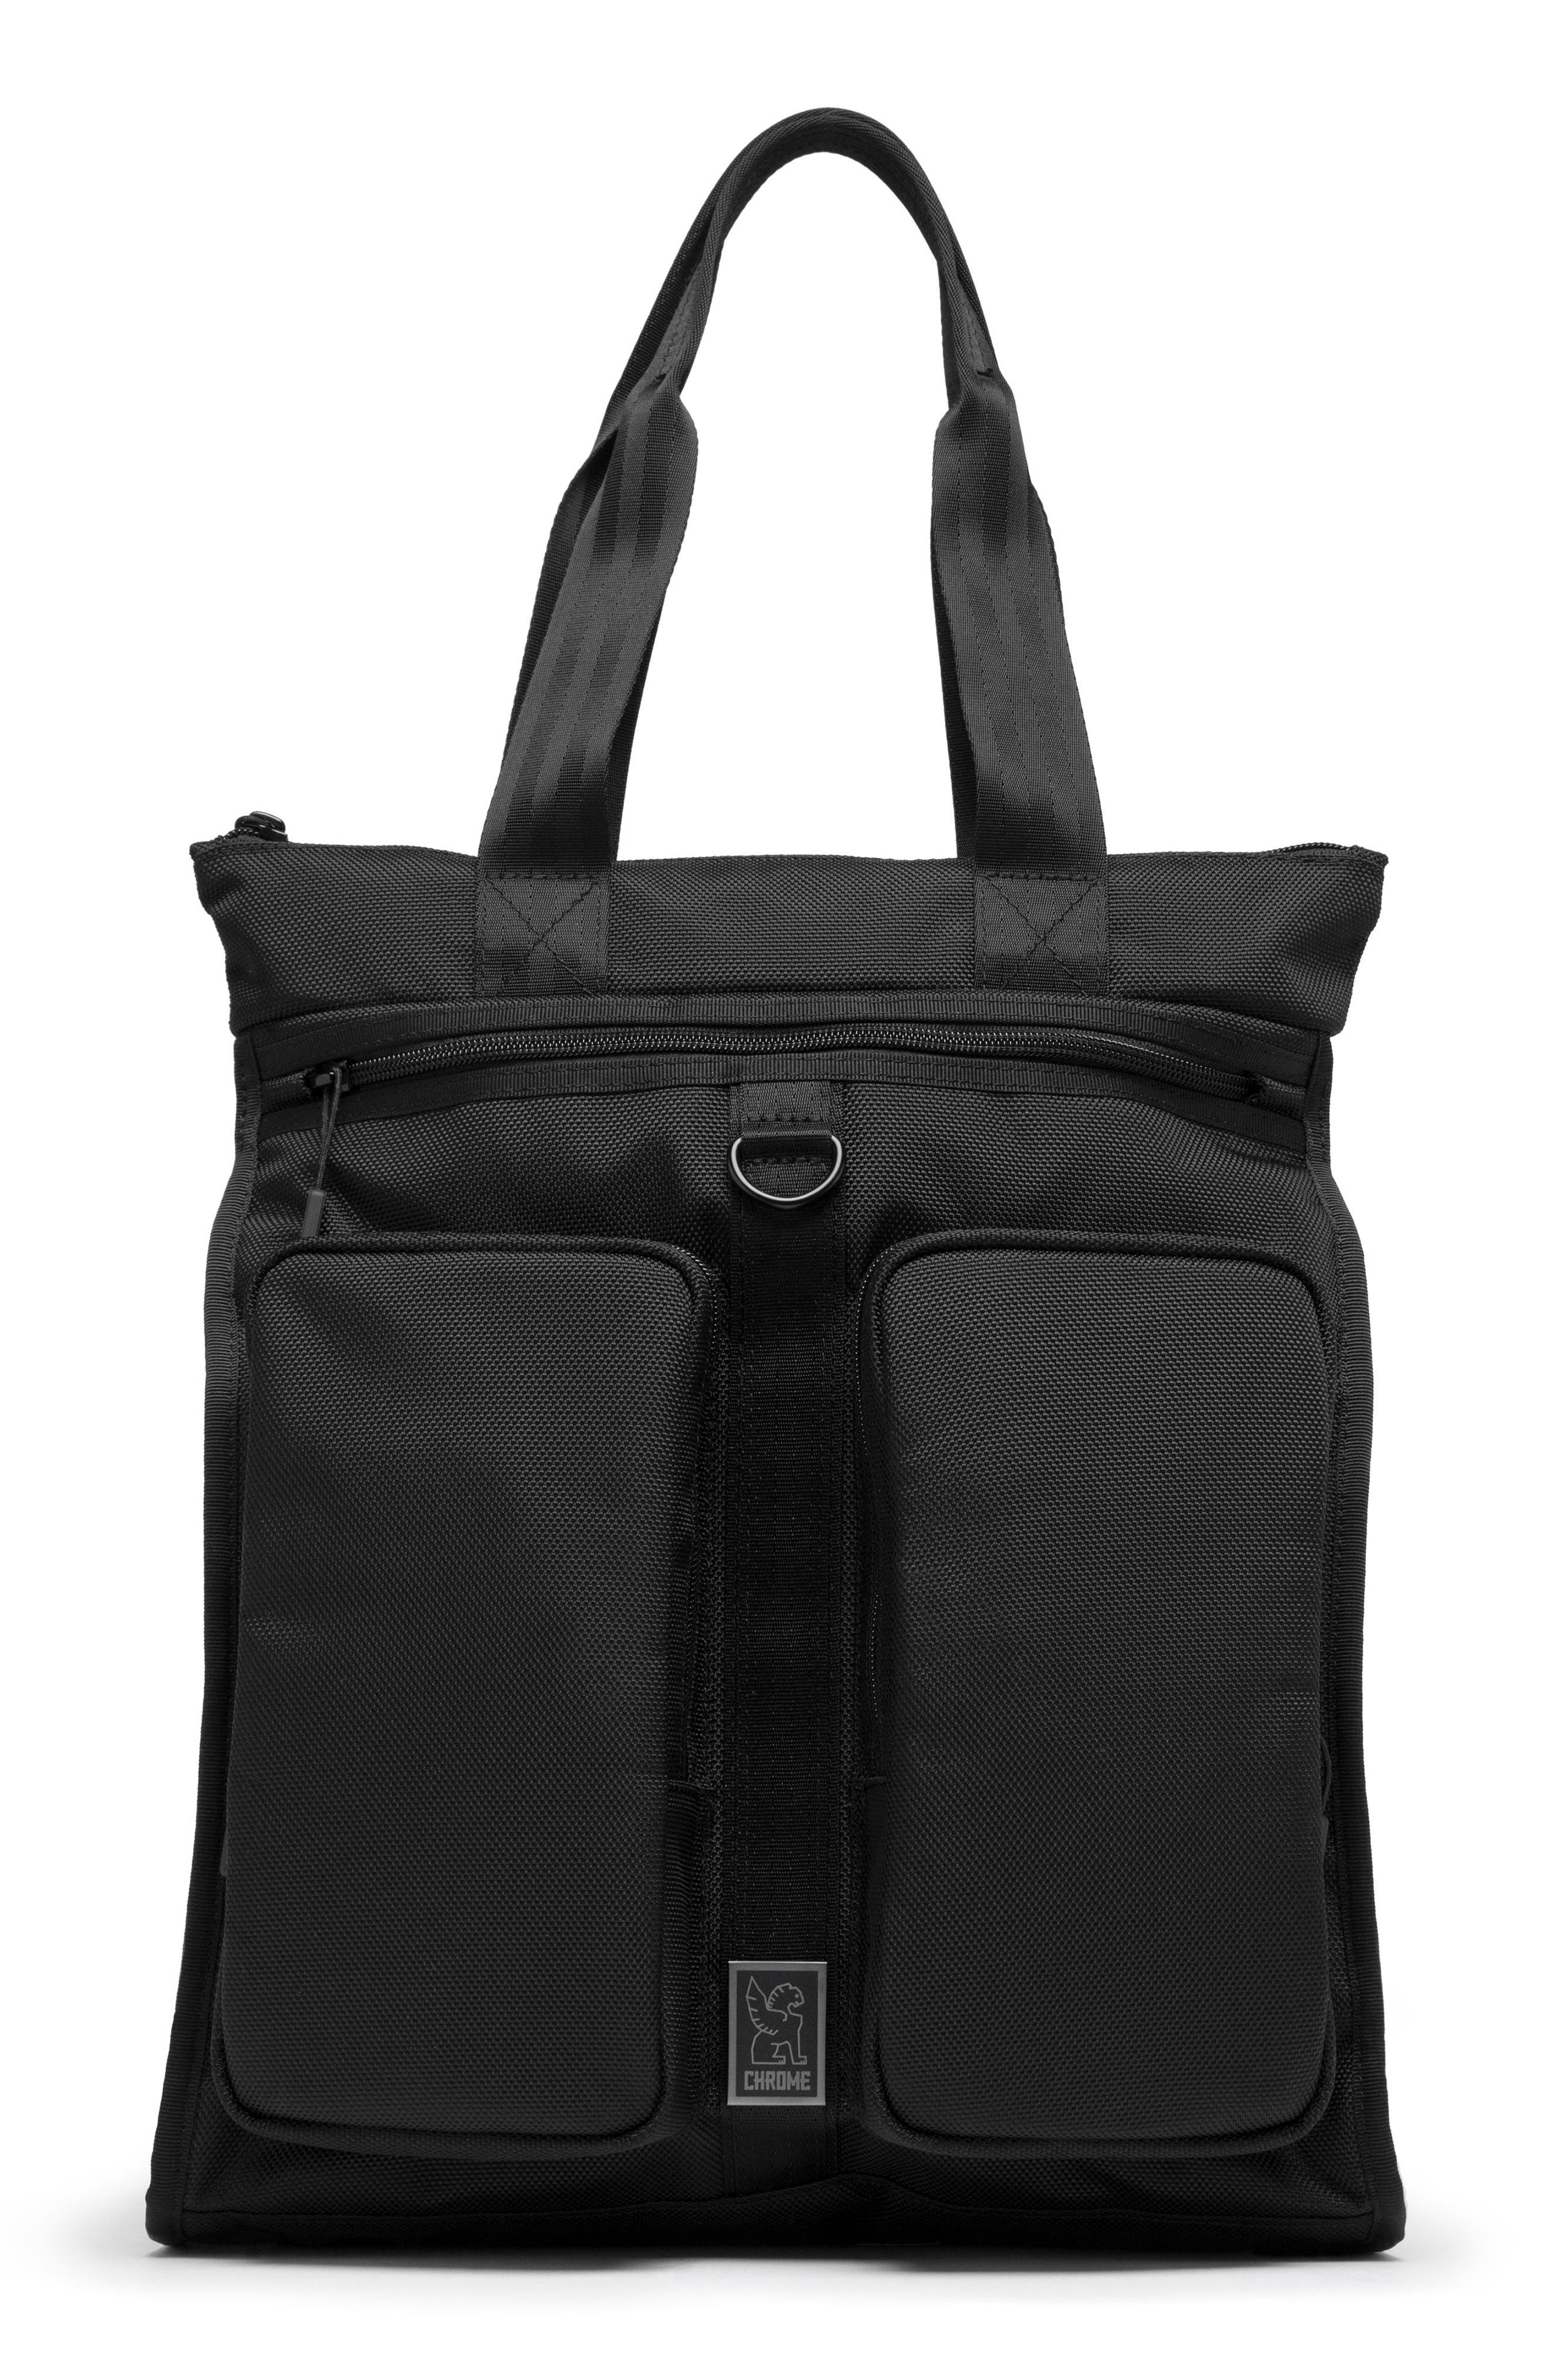 MXD Pace Tote Bag,                         Main,                         color, All Black